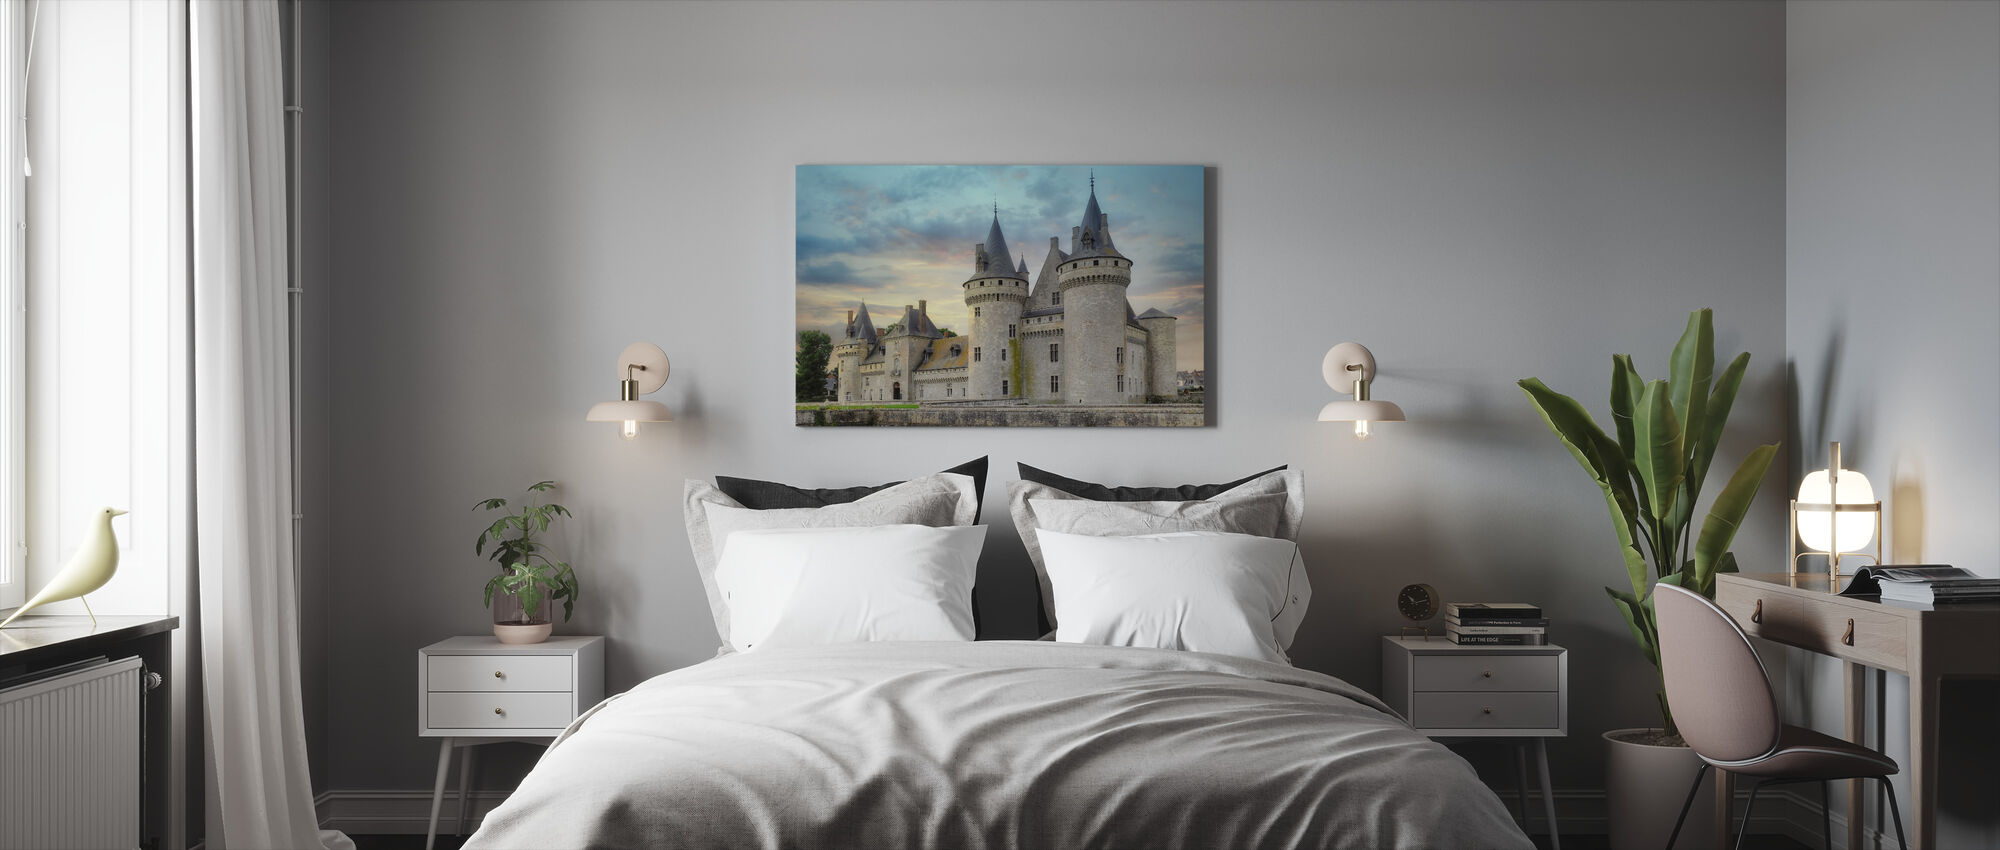 Castle with Towers - Canvas print - Bedroom